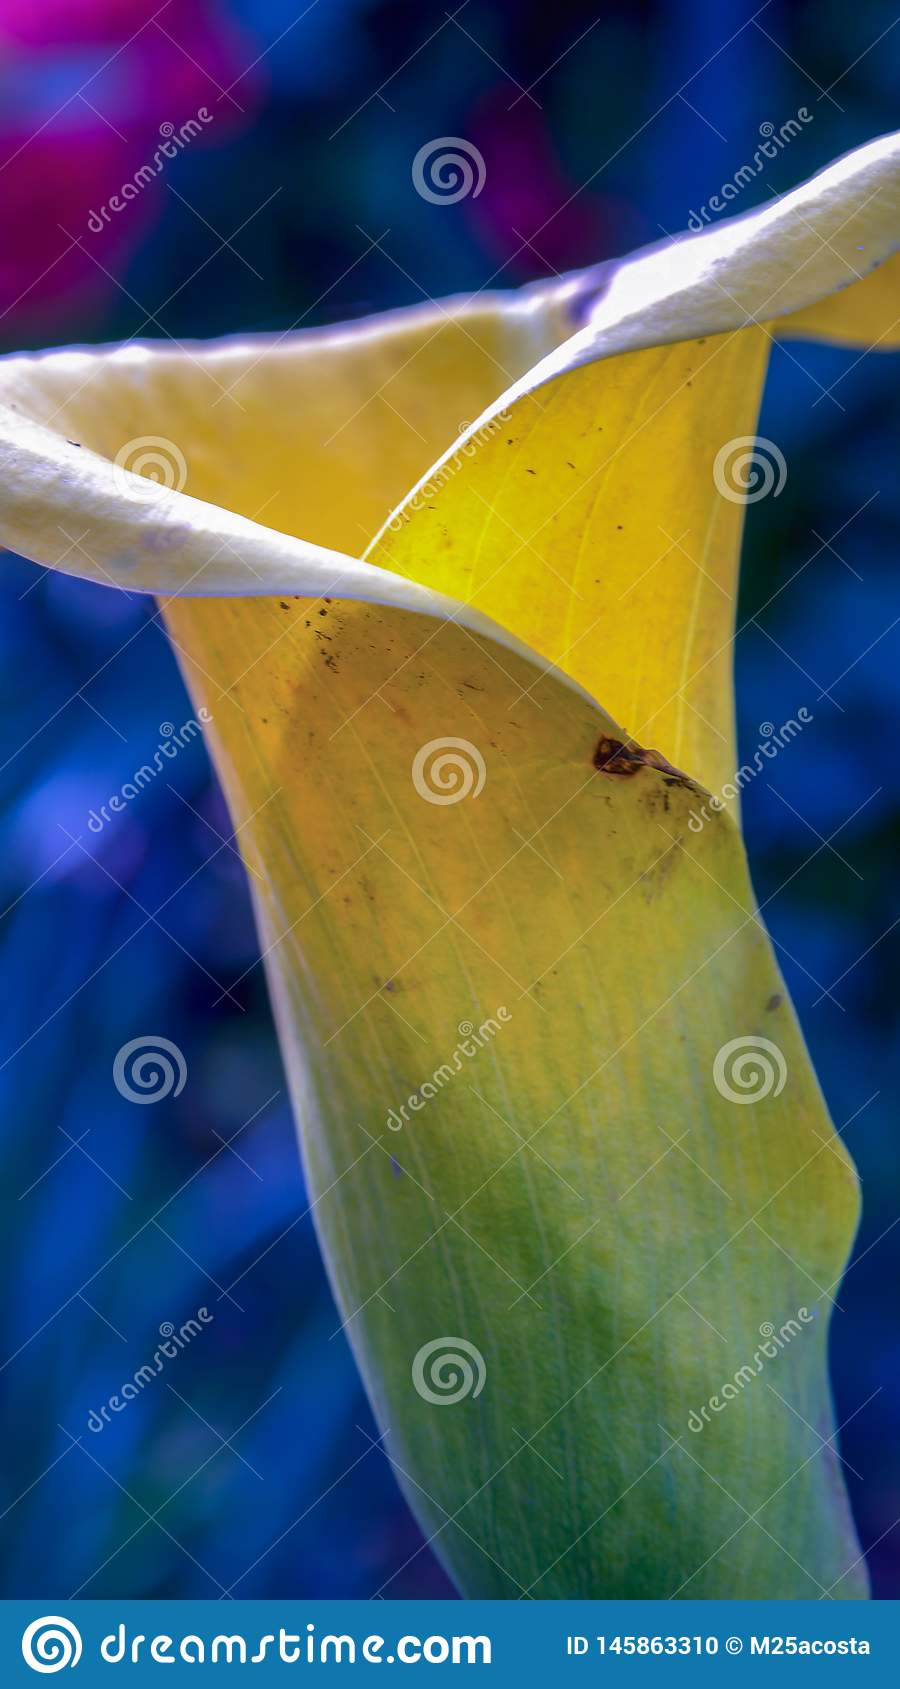 Golden arum flower from the side